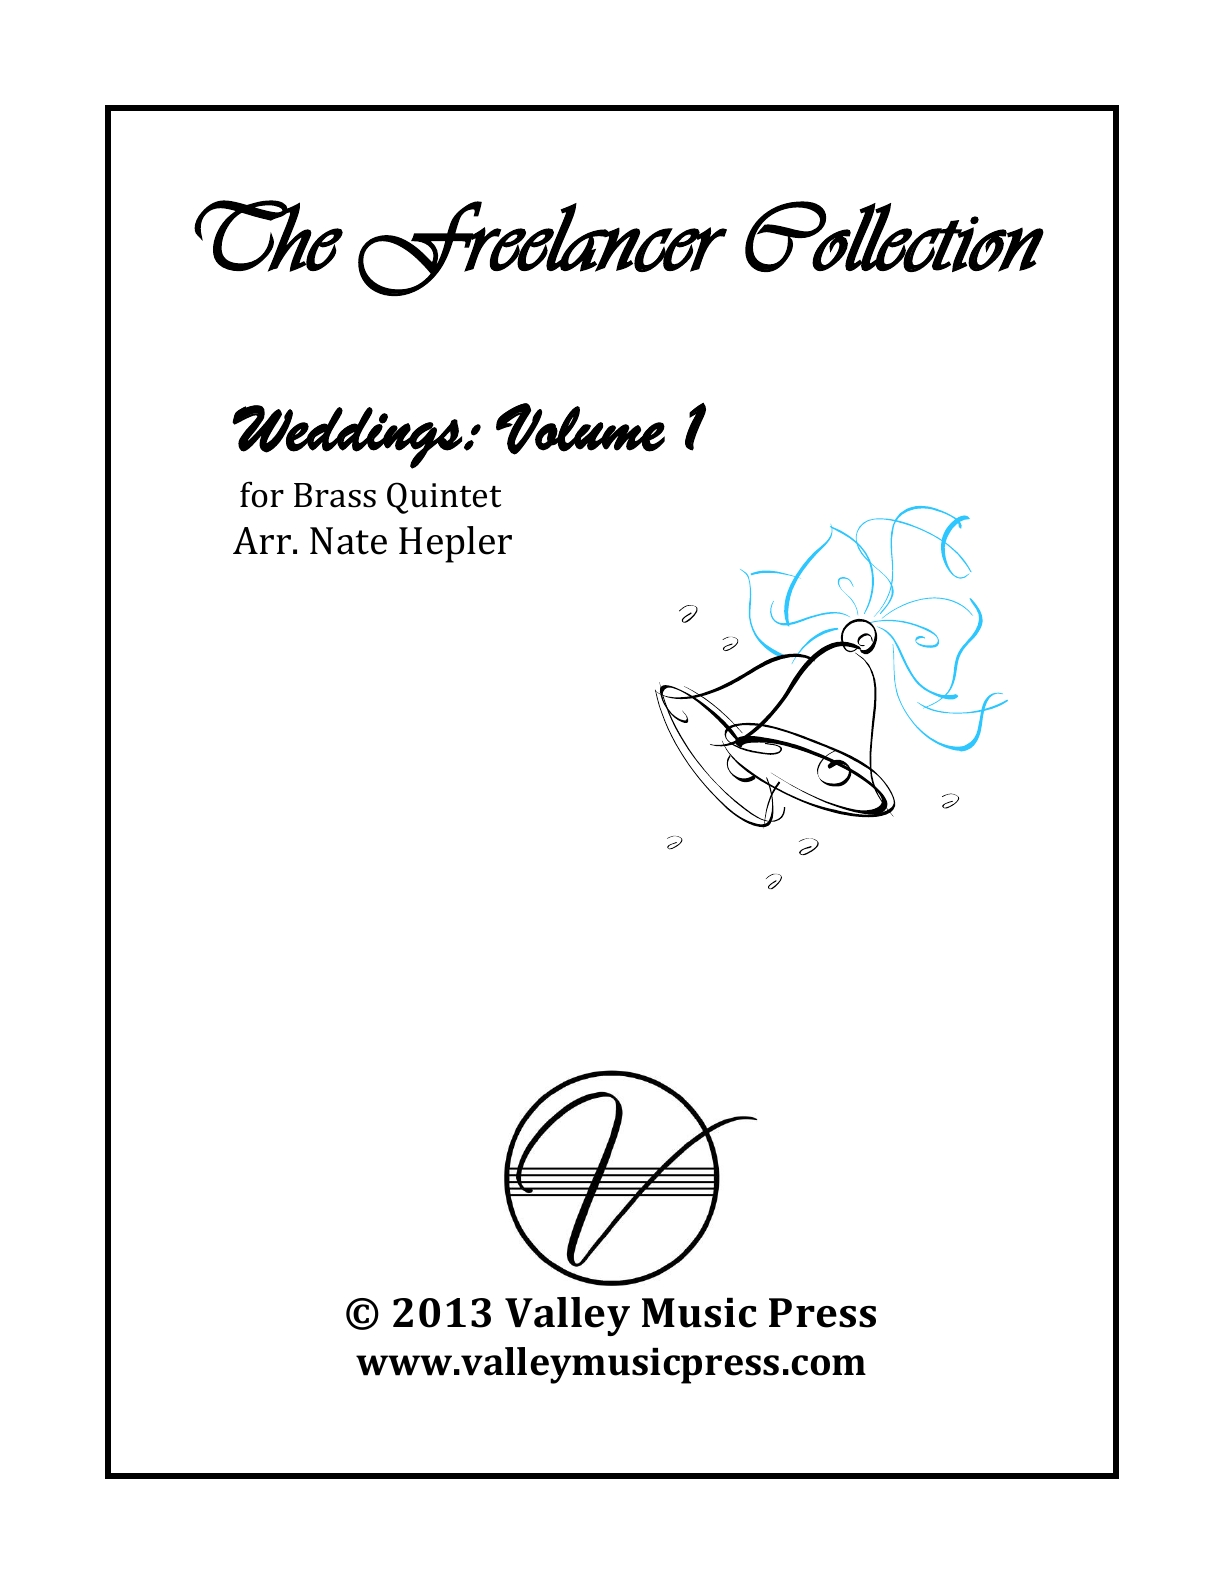 Hepler - The Freelancer Collection - Weddings: Vol. 1 (BQ)